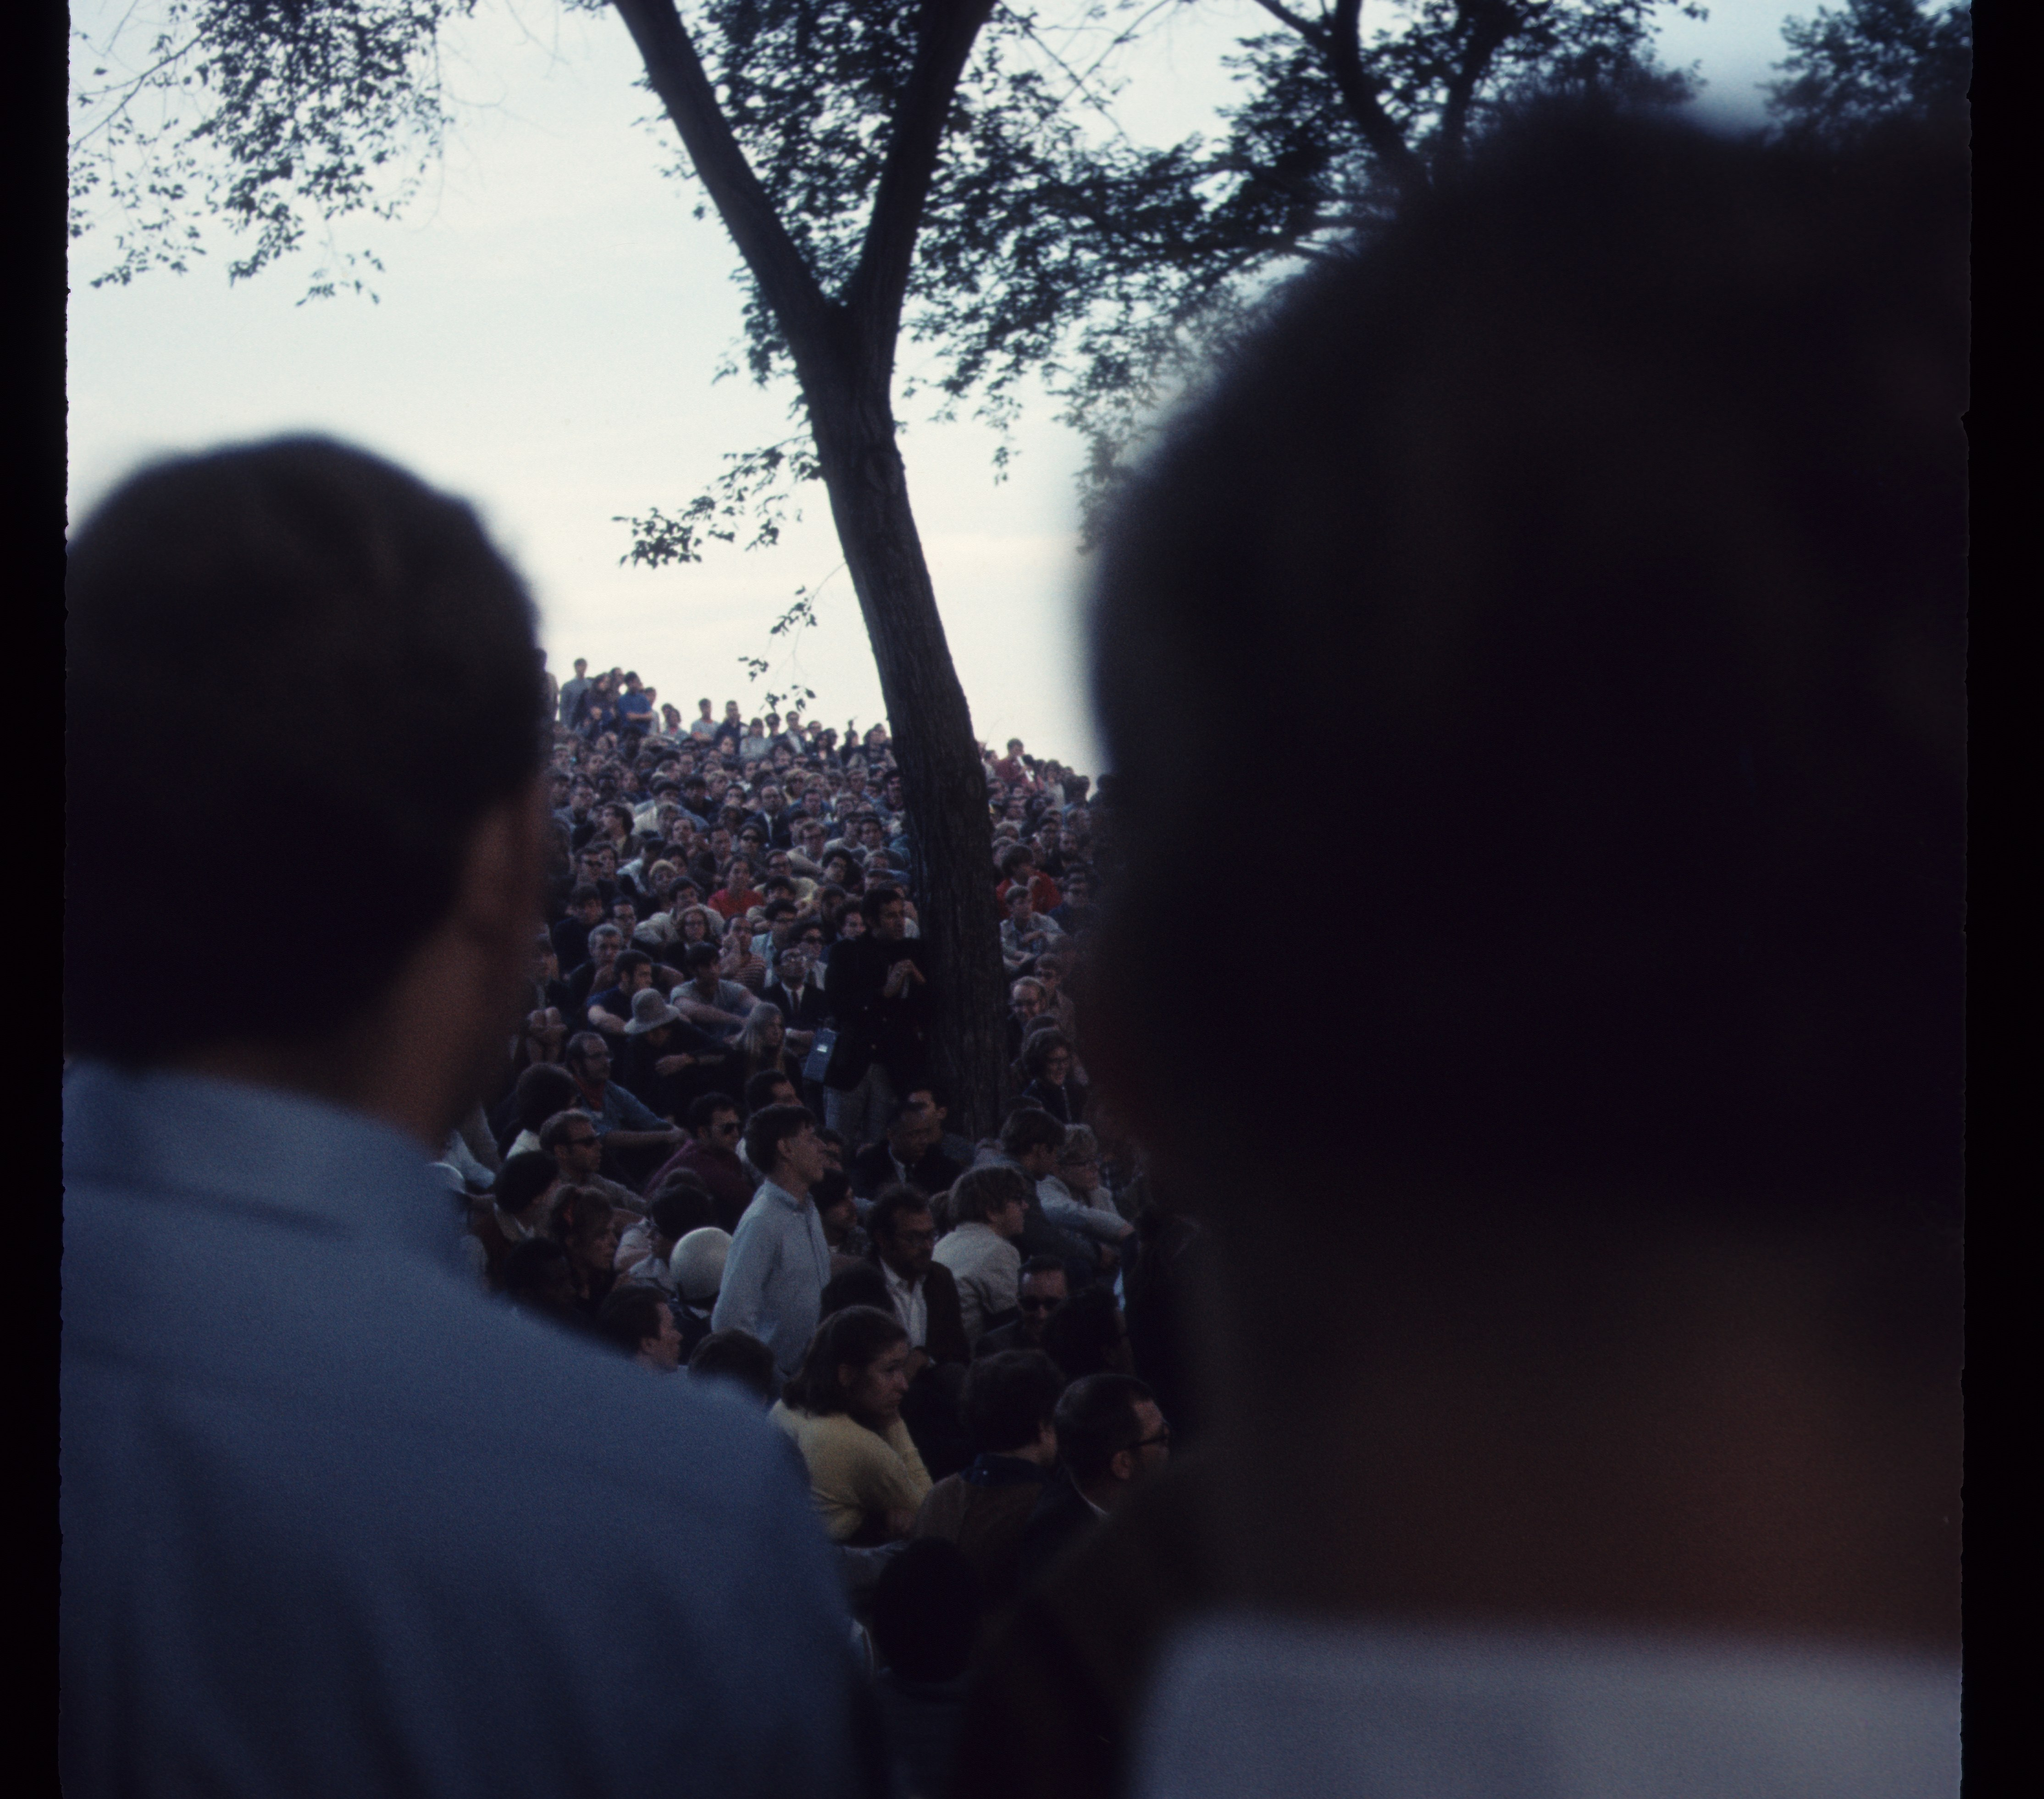 Columbia University protests of 1968 - Wikipedia 1968 convention riot photo